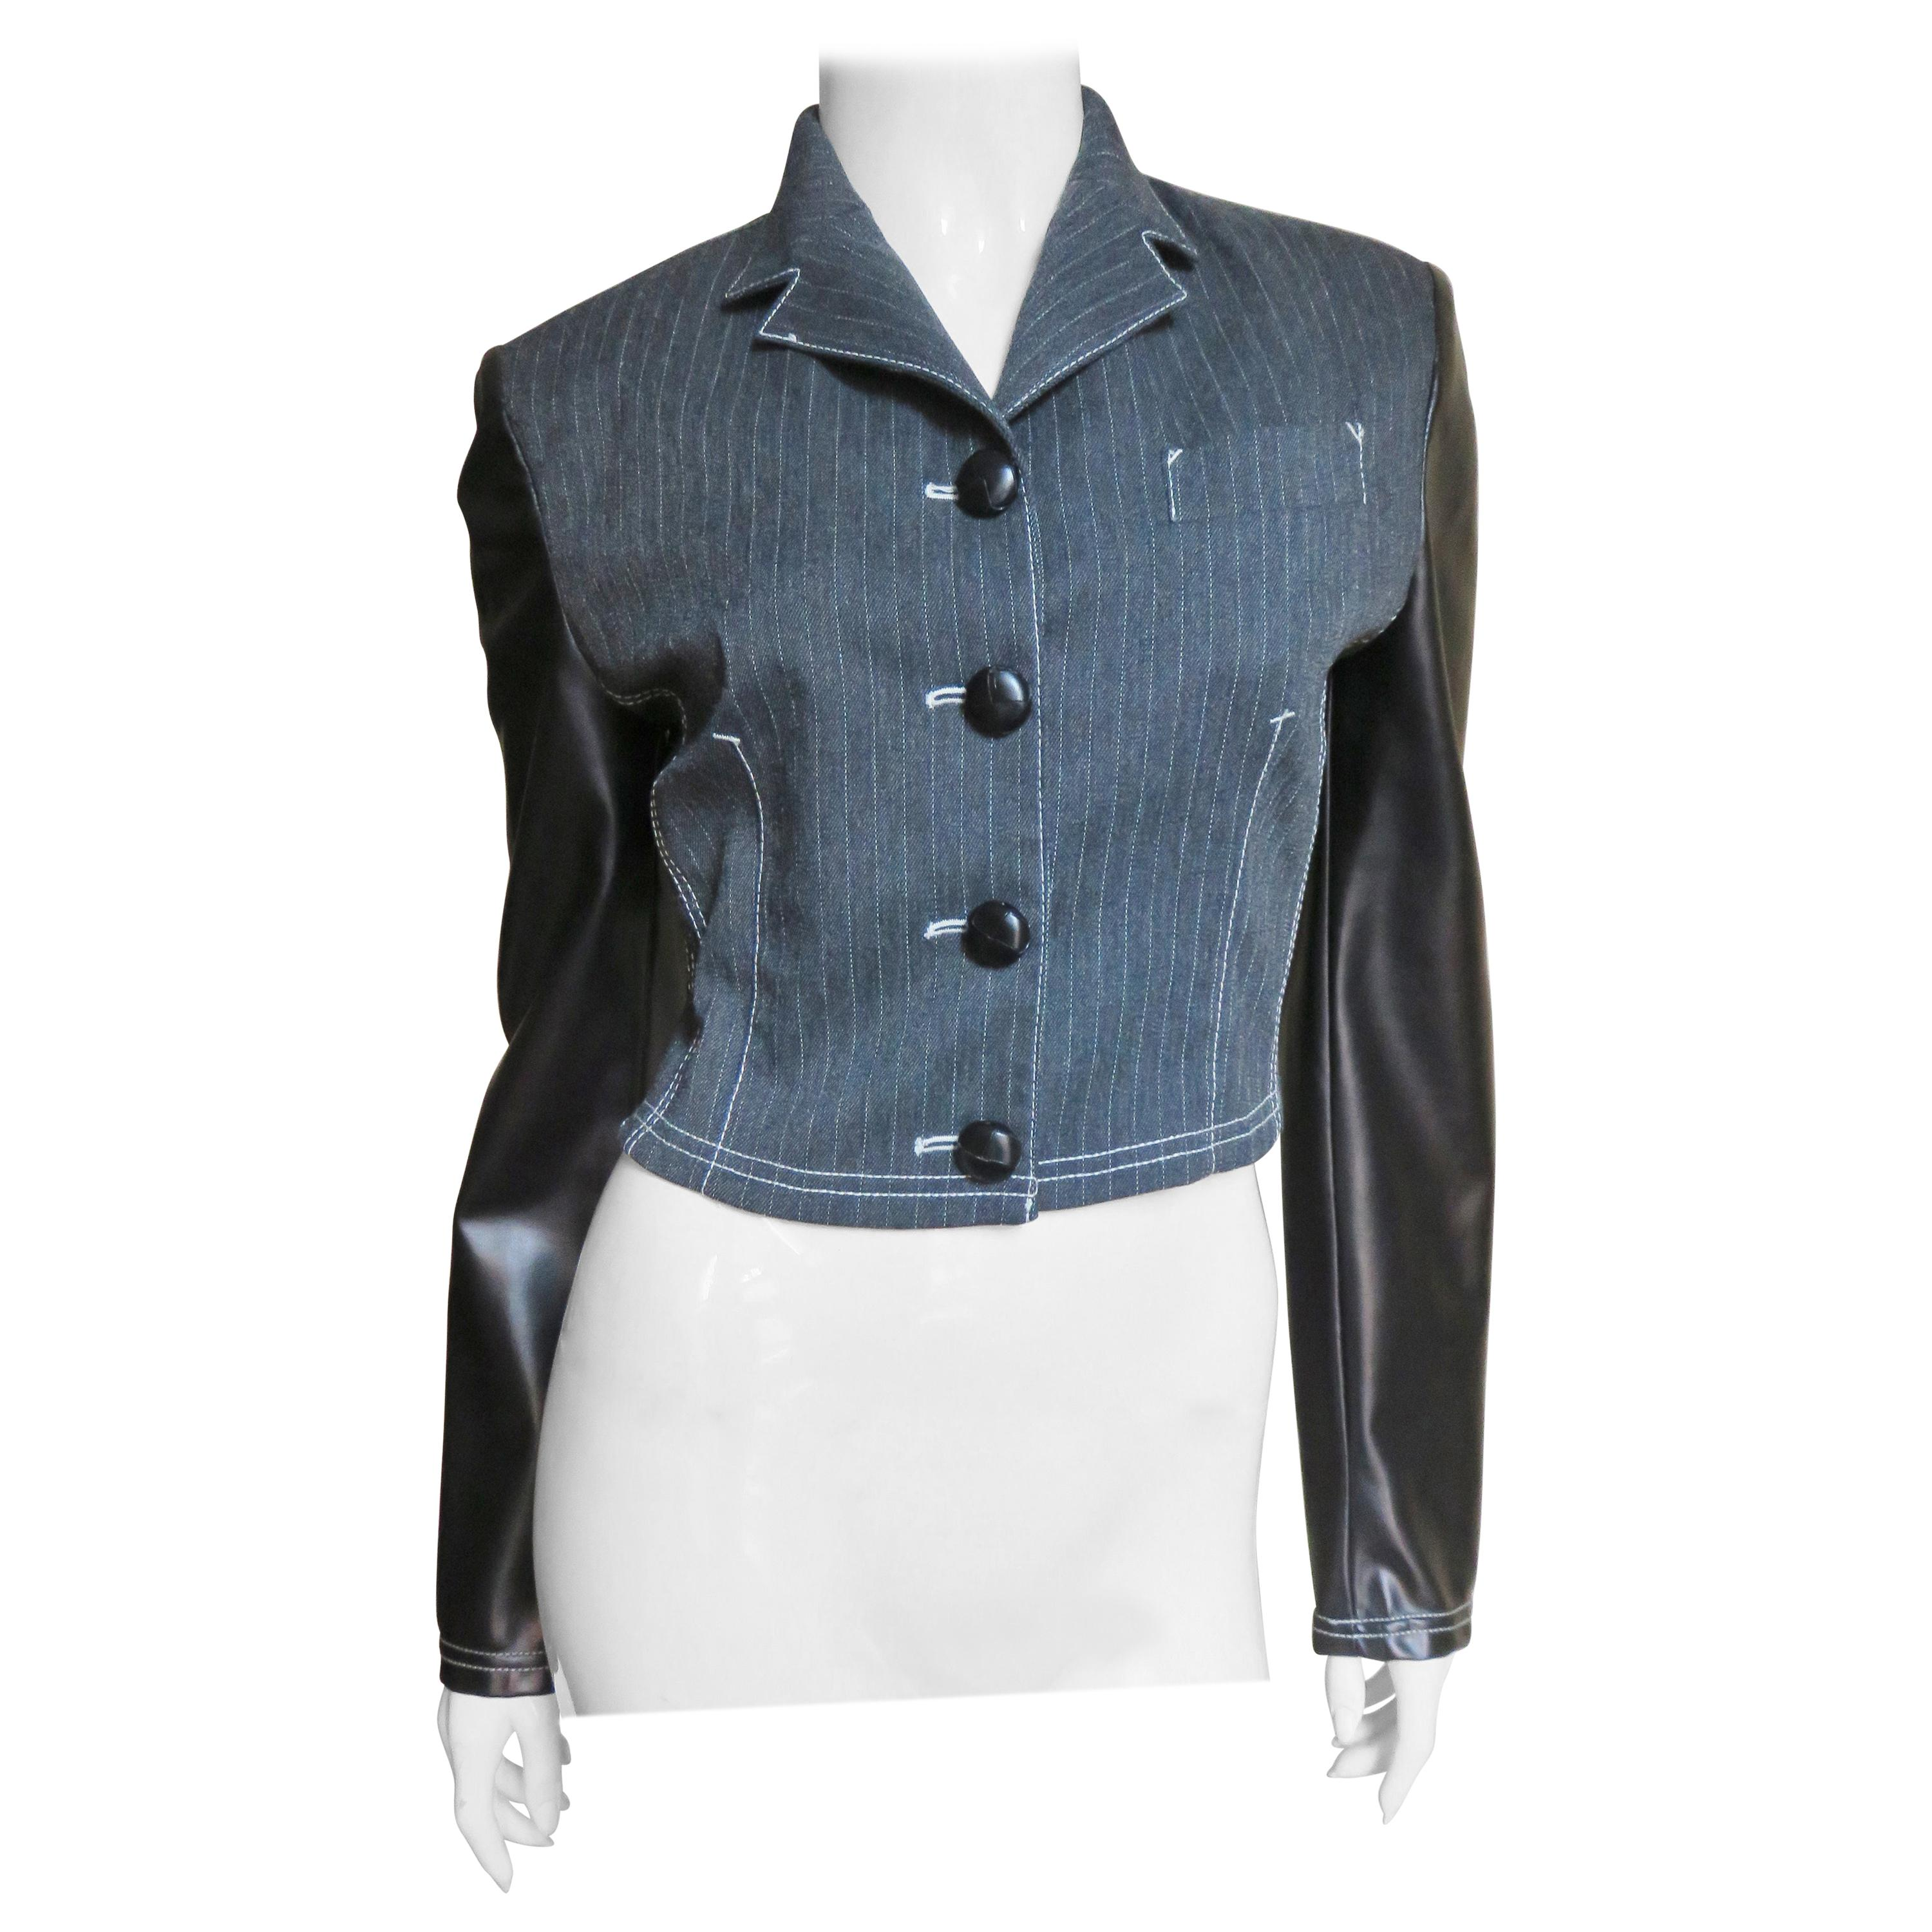 Jean Paul Gaultier 1980s Jacket with Polyurethane Sleeves